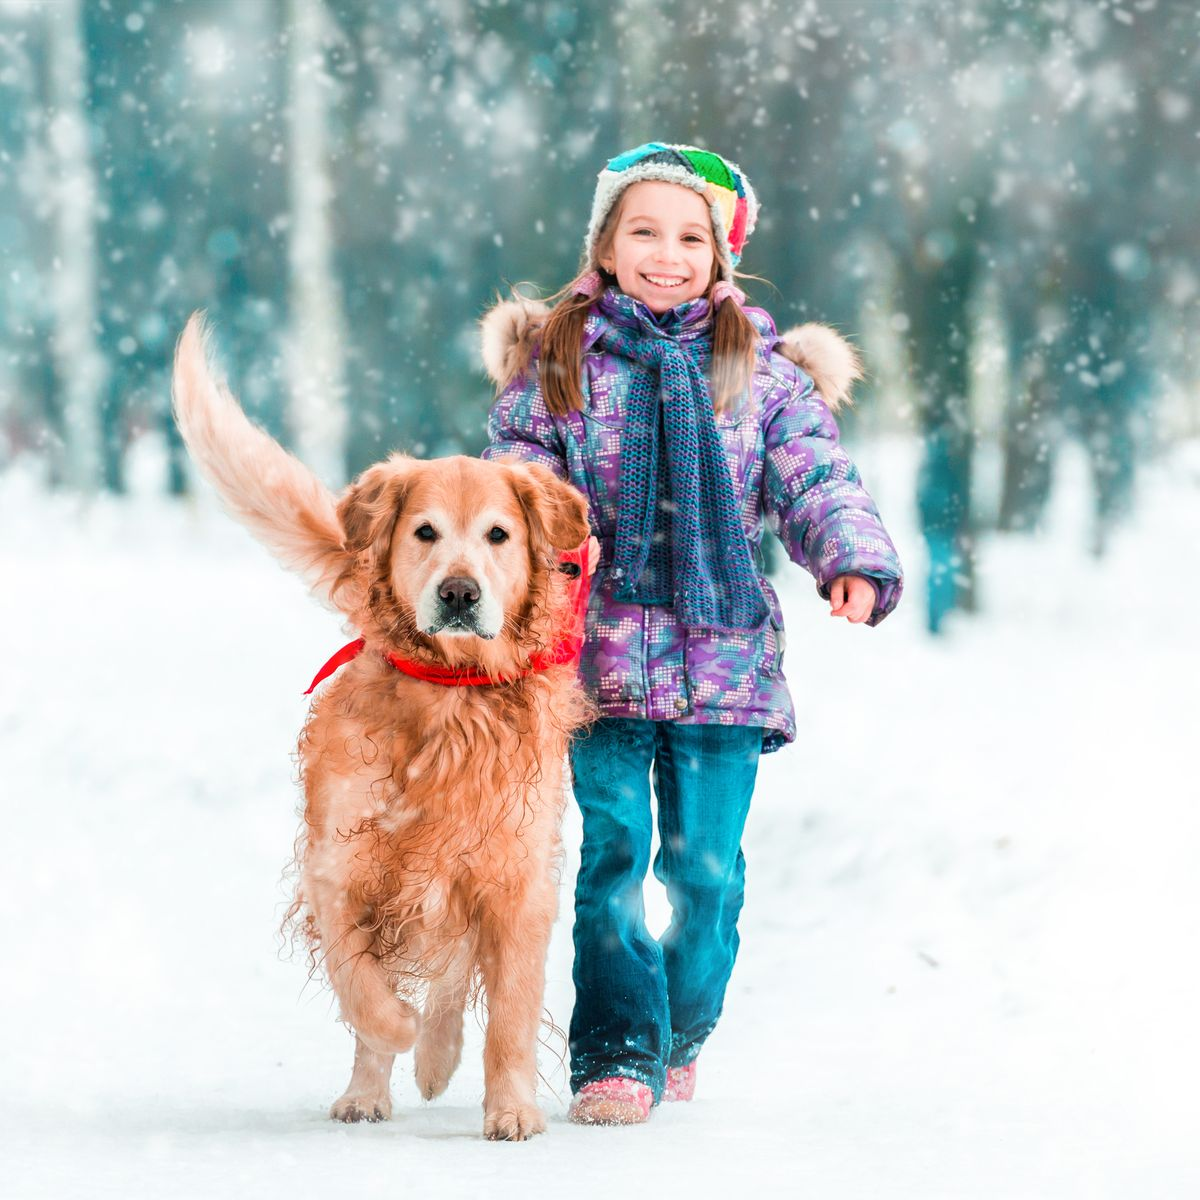 Winter is Coming – Pets on Snow